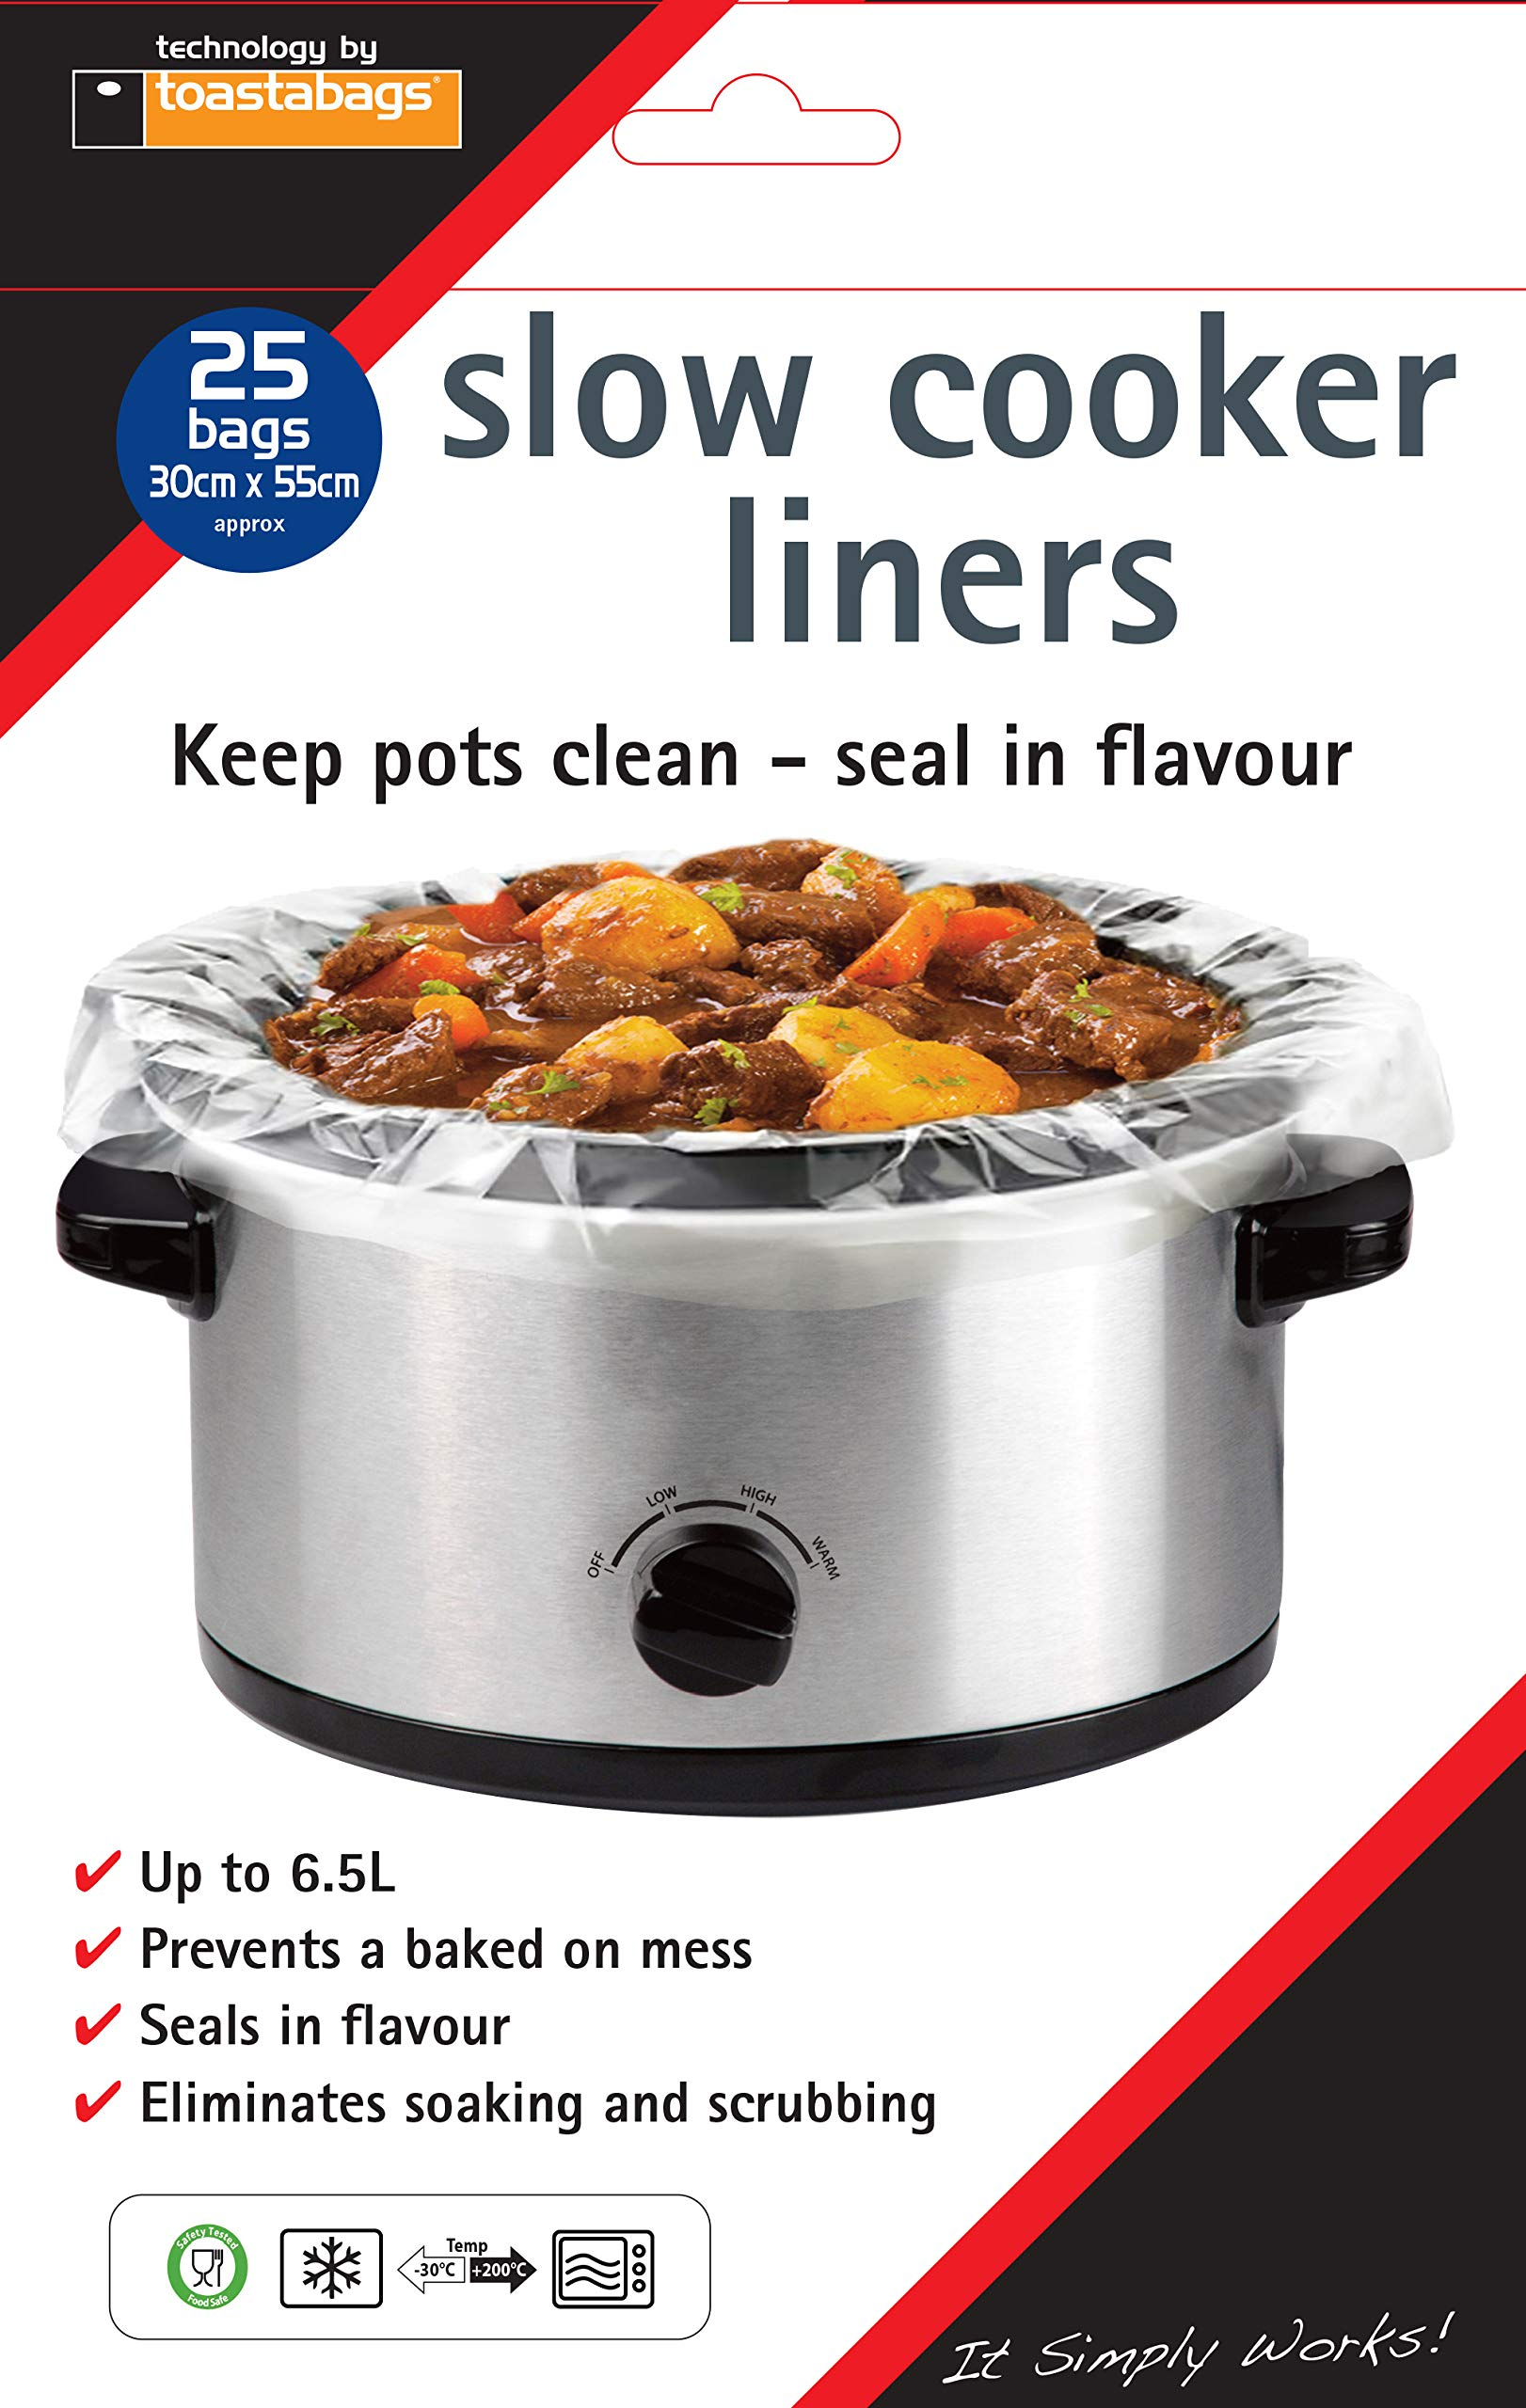 Large Size 13 x 21 Inch WRAPOK Slow Cooker Liners Cooking Bags BPA Free for Oval or Round Pot Fits 3 to 8.5 Quarts 10 Bags Total 1 Pack